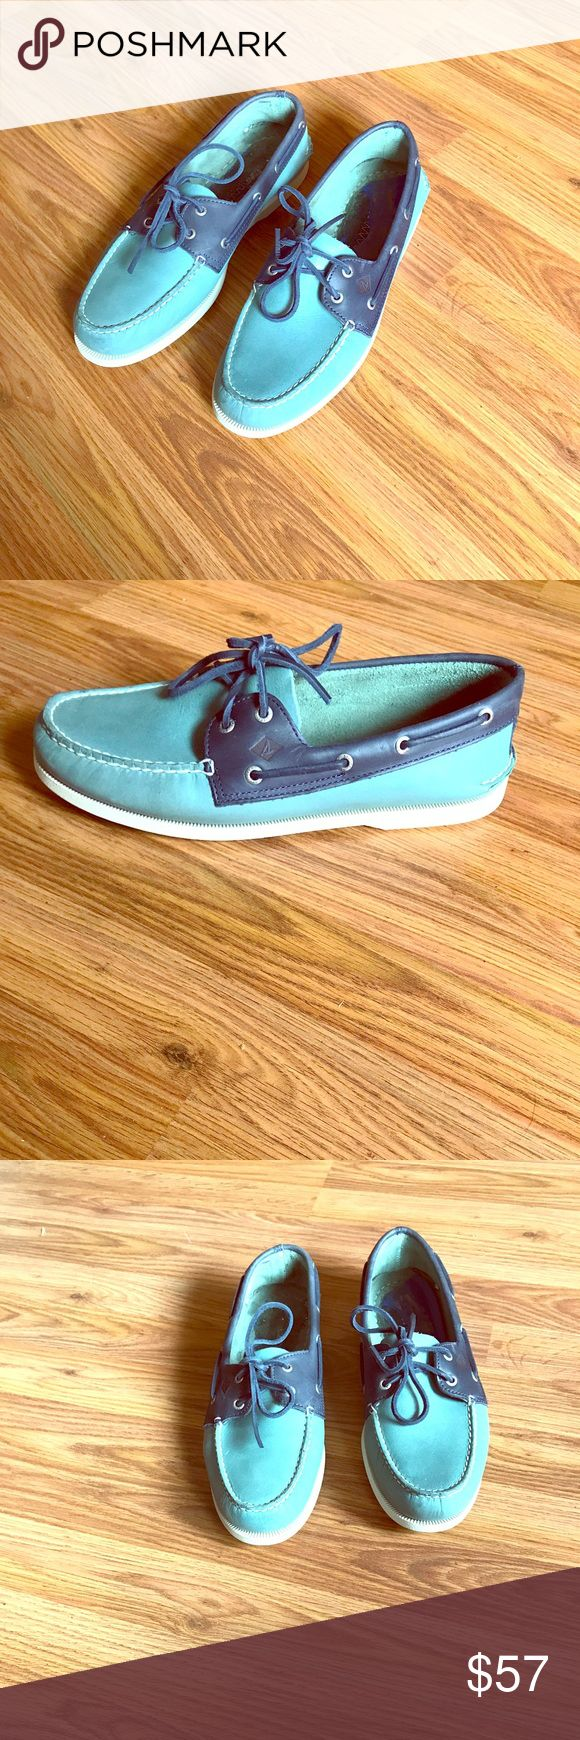 Men's Sperry - Never worn! Top-Sider Boat Shoes Sperry Top-Sider A/O 2-Eye Sarape Blue Surf/Navy Men's Boat Shoe. The shoes are brand NEW and have never been worn. However, the original insoles have been removed (see picture above for a visual image of what I am referring to). Nonetheless the shoes are still Brand New the only imperfection is they don't have insoles; but are very cheap to purchase if you choose to. Sperry Top-Sider Shoes Boat Shoes